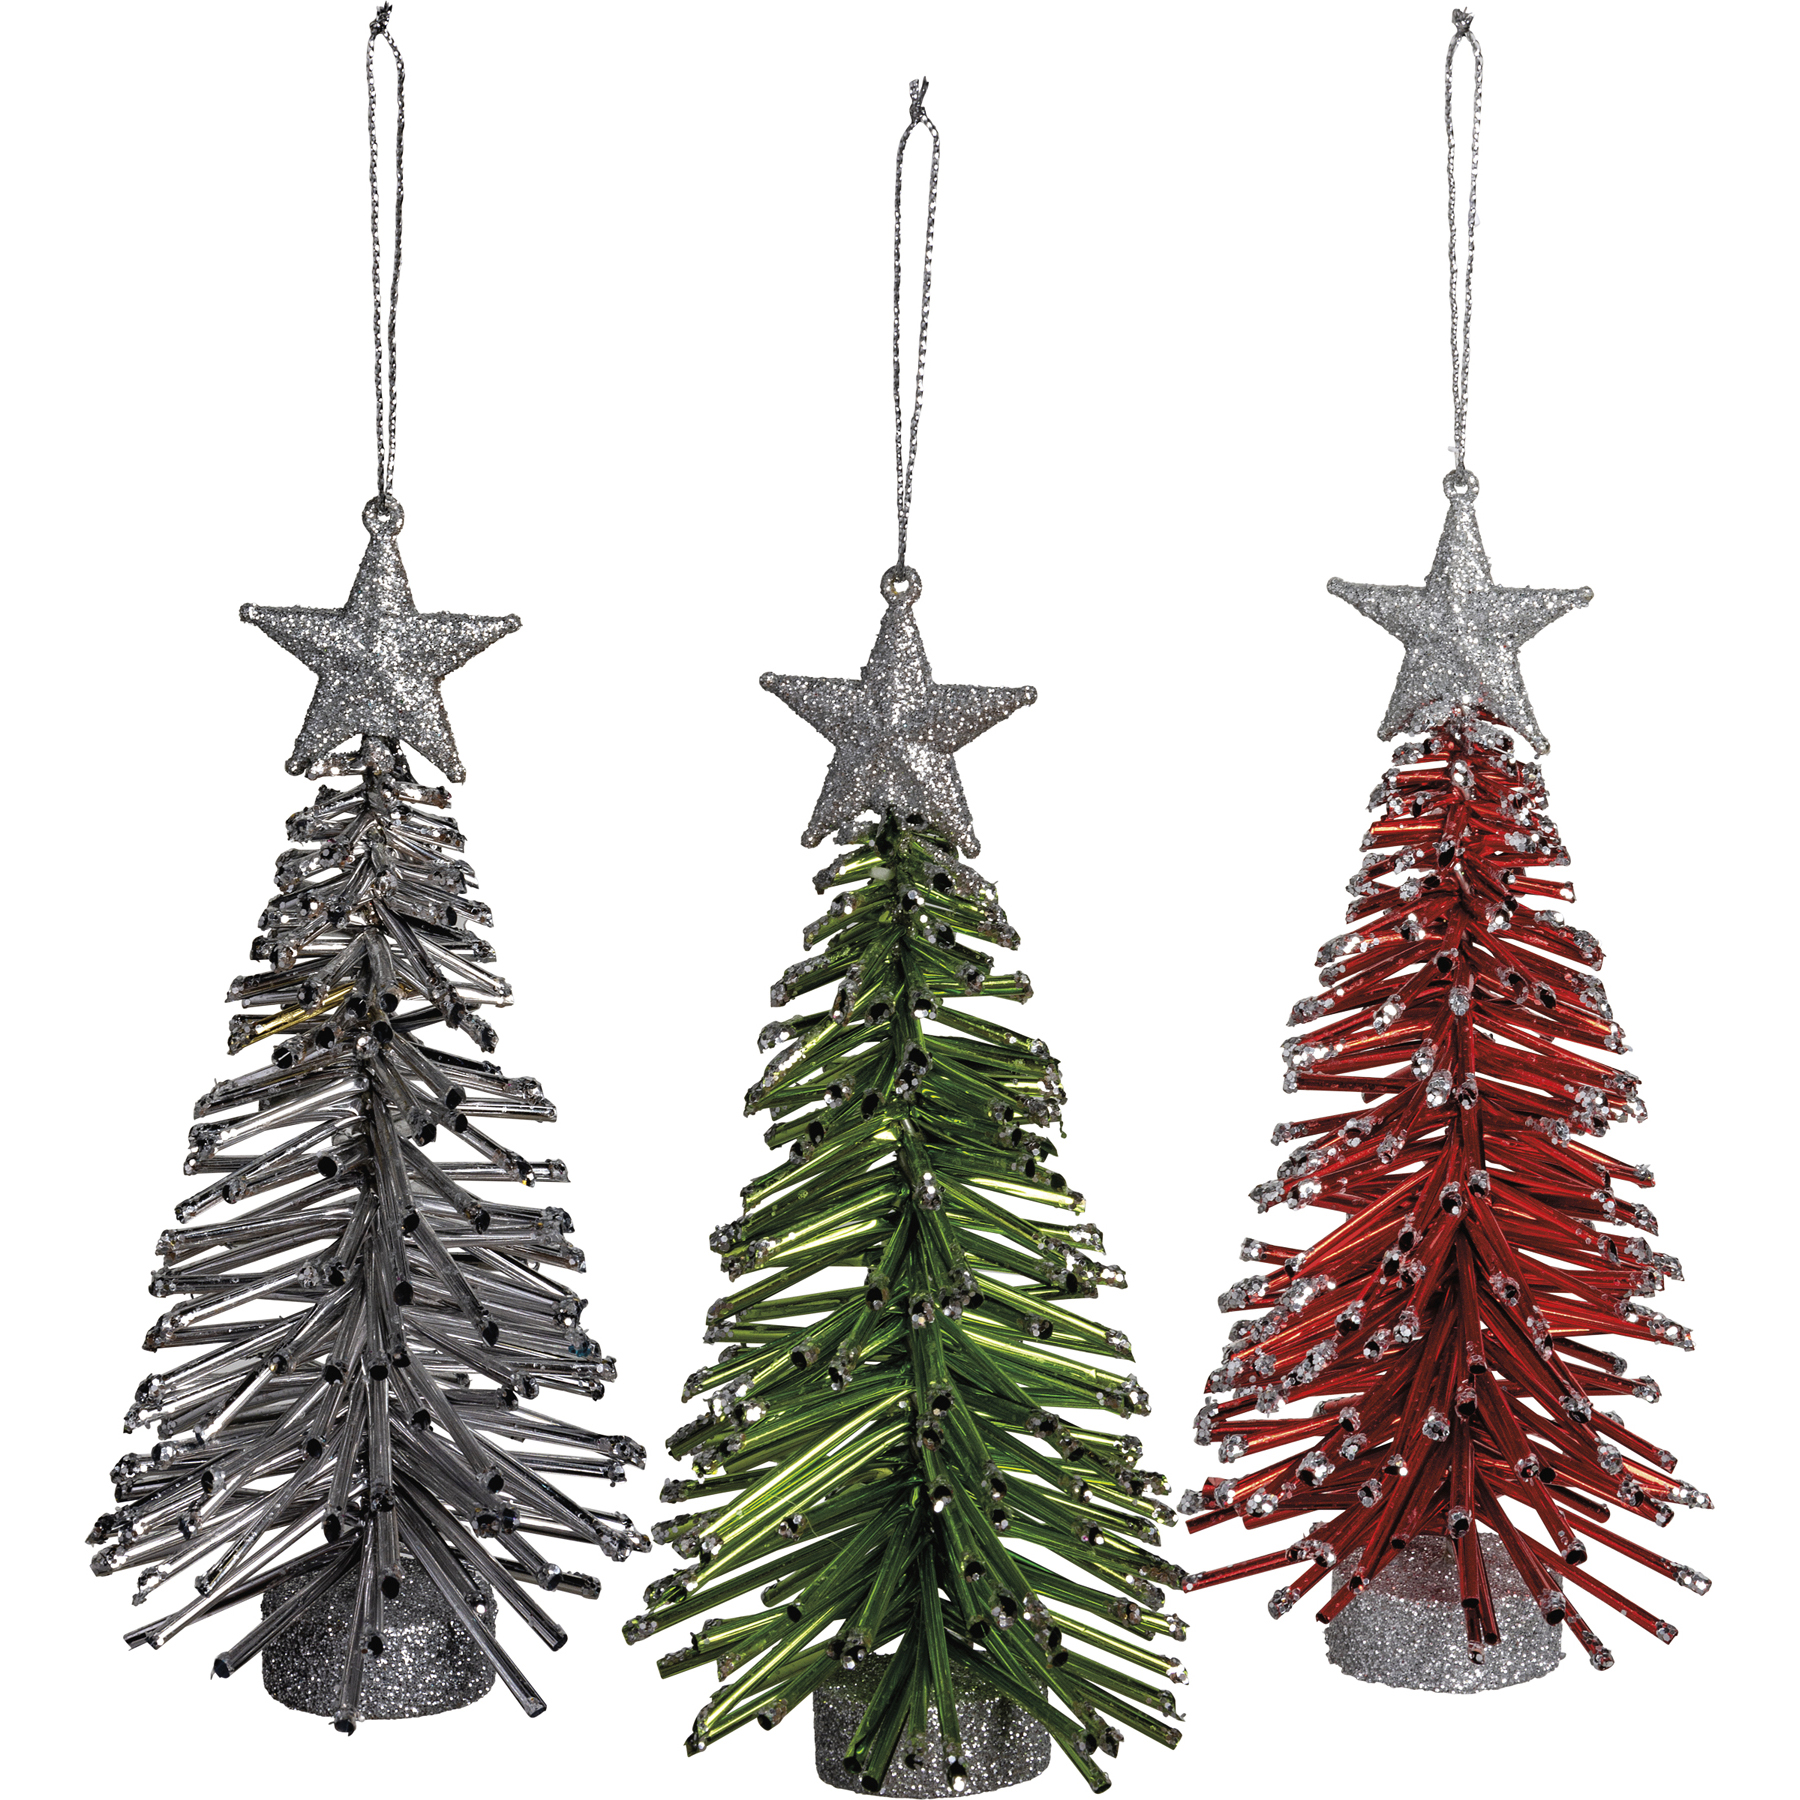 Set Of 3 Red Green Silver Star Topped Hanging Christmas Tree Ornaments From Primitives By Kathy